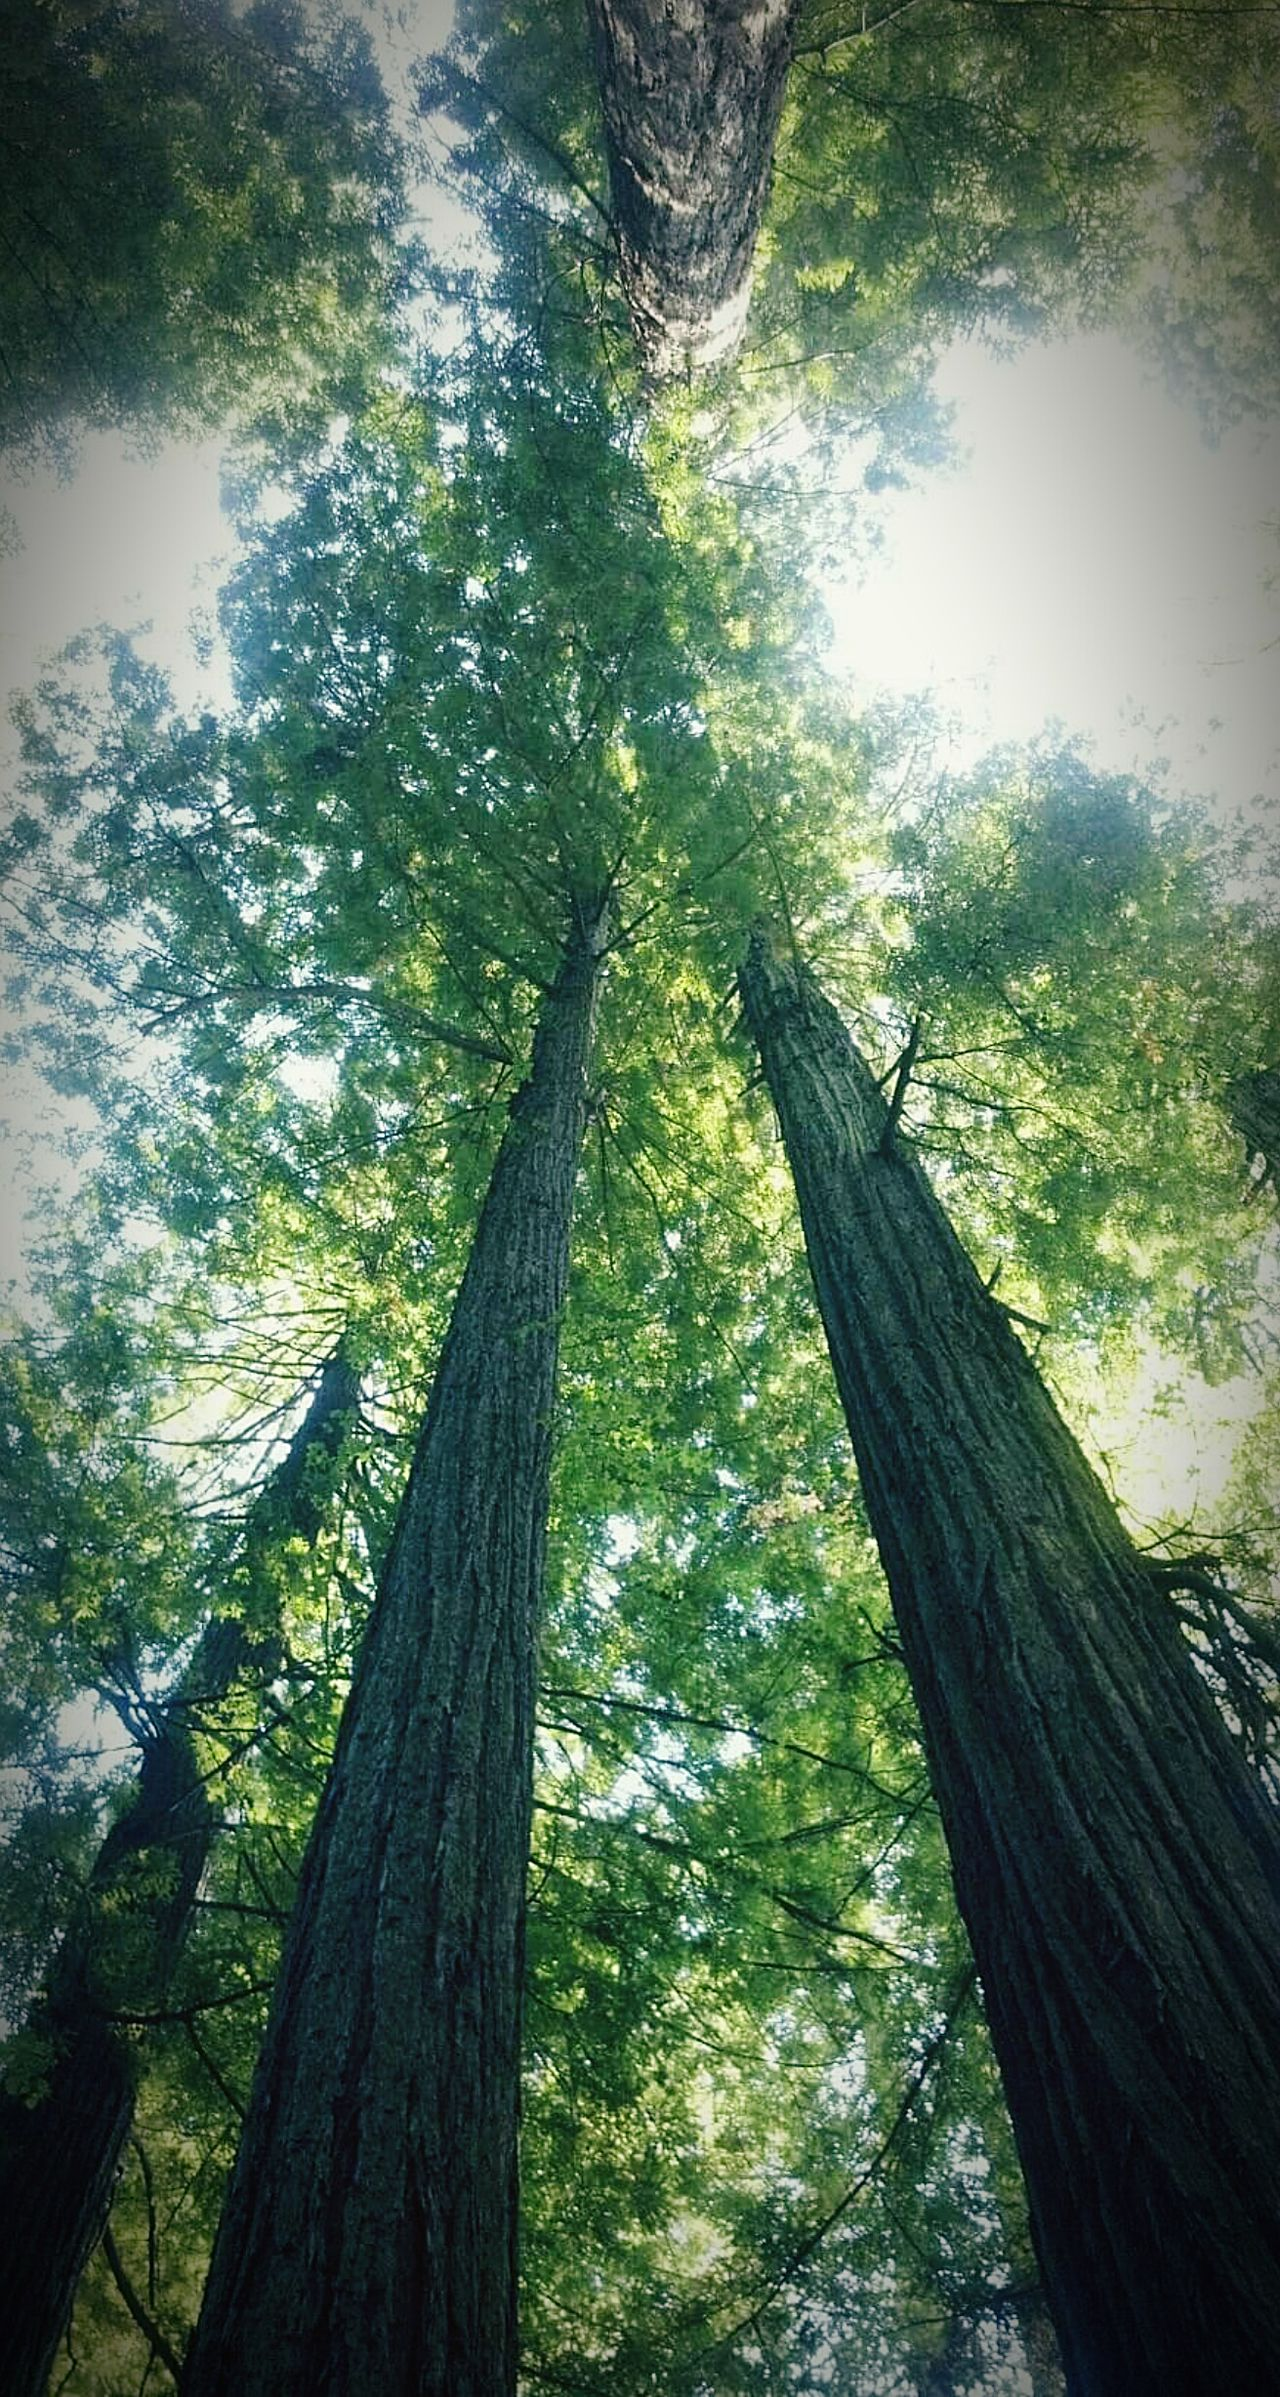 Lookingup to the Redwood Trees Redwood Forest in Northern California WestCoast Tallesttrees Trees Freshness Greenery TheGreatOutdoors Tall Treebranches Fresh Air Nature